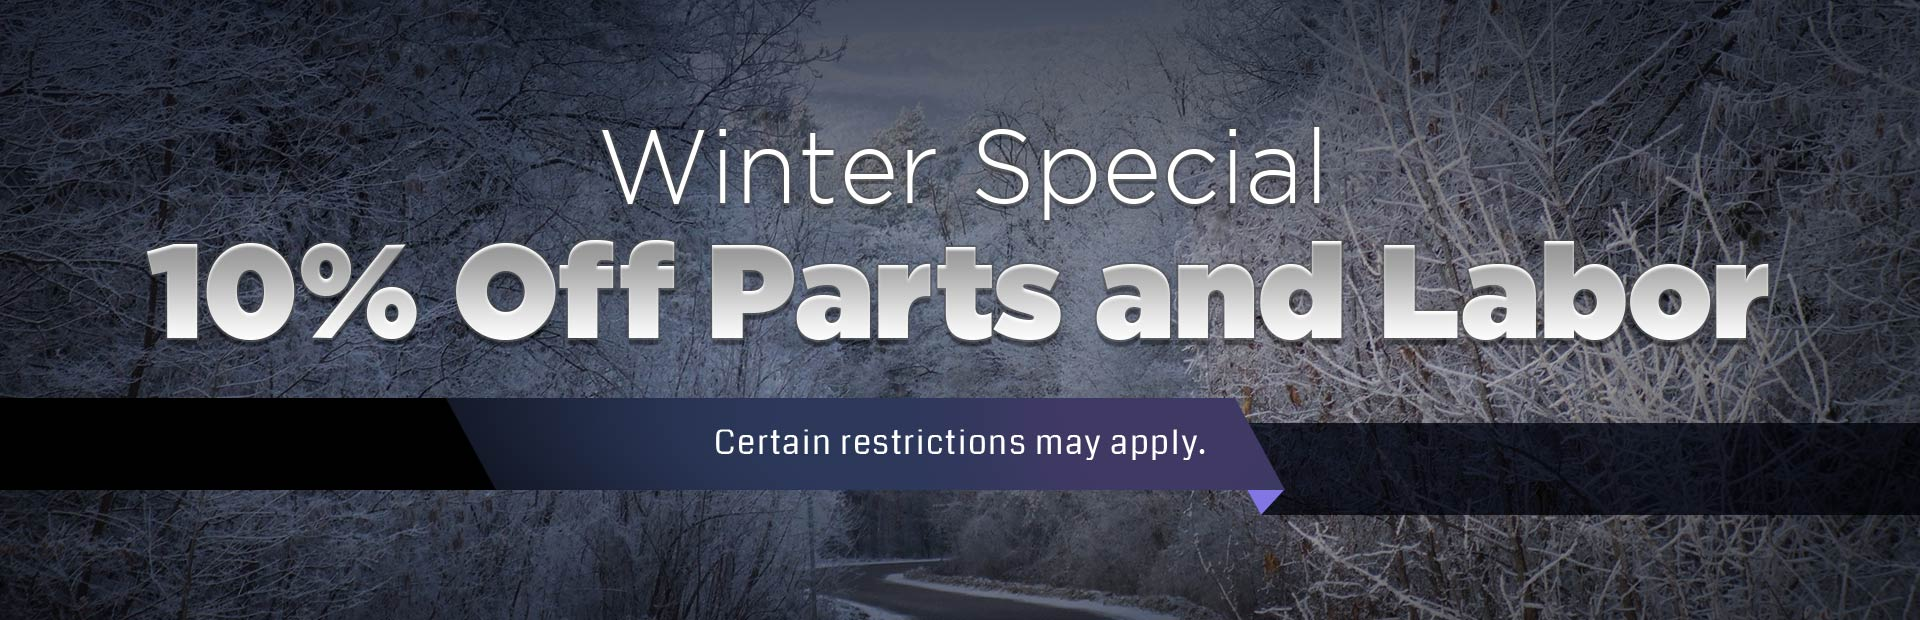 Winter Special: Get 10% off parts and labor! Certain restrictions may apply. Click here to view the services we offer.